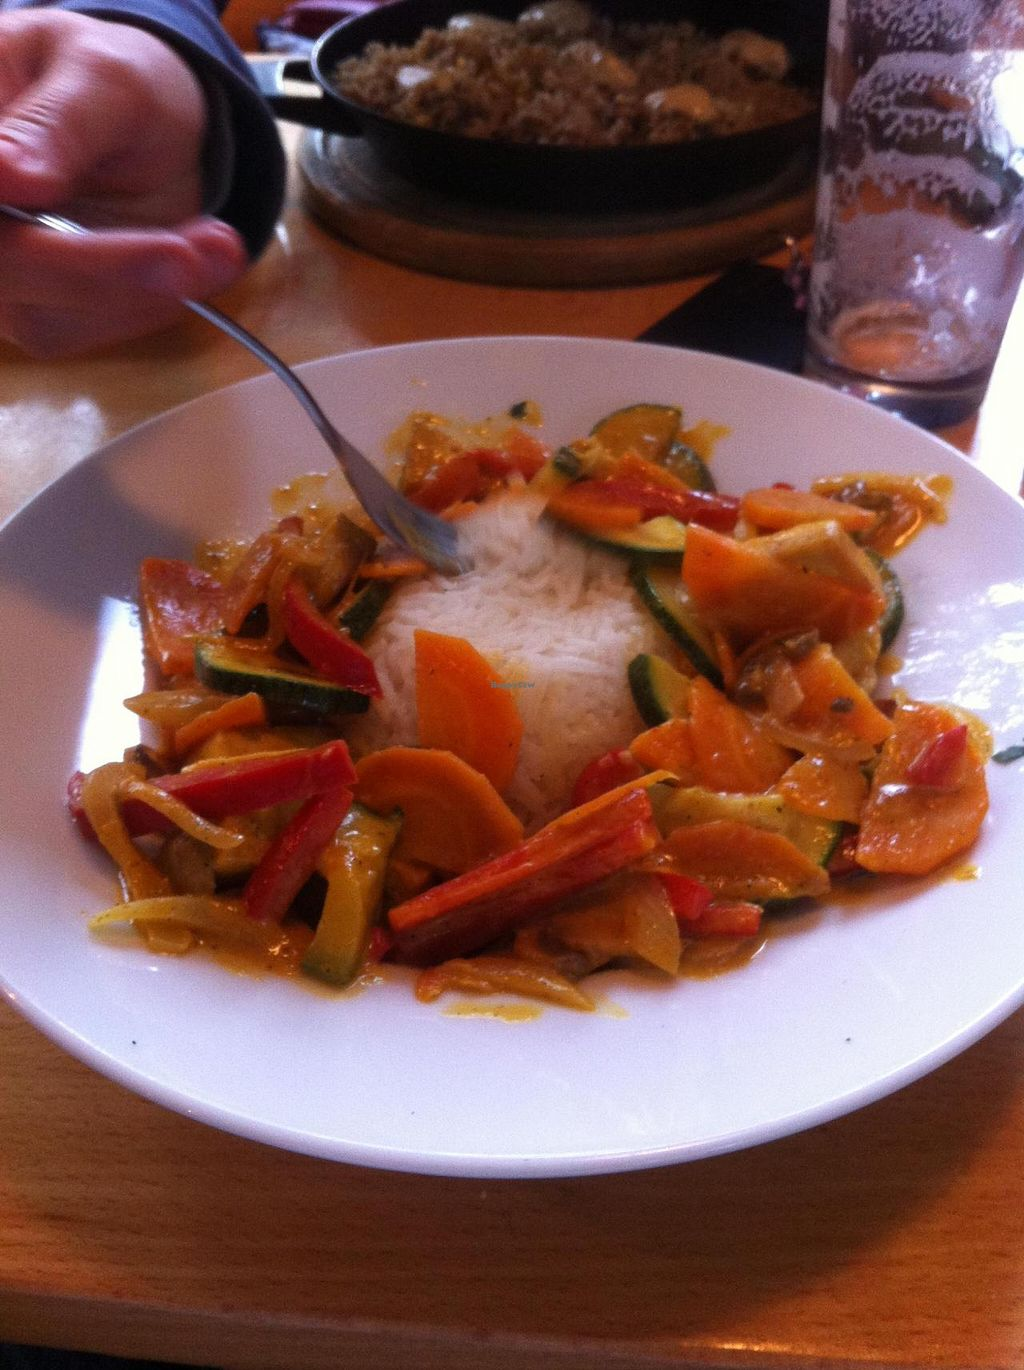 "Photo of Subrosa  by <a href=""/members/profile/SimonGruber"">SimonGruber</a> <br/>vegan curry <br/> September 2, 2014  - <a href='/contact/abuse/image/6593/78853'>Report</a>"